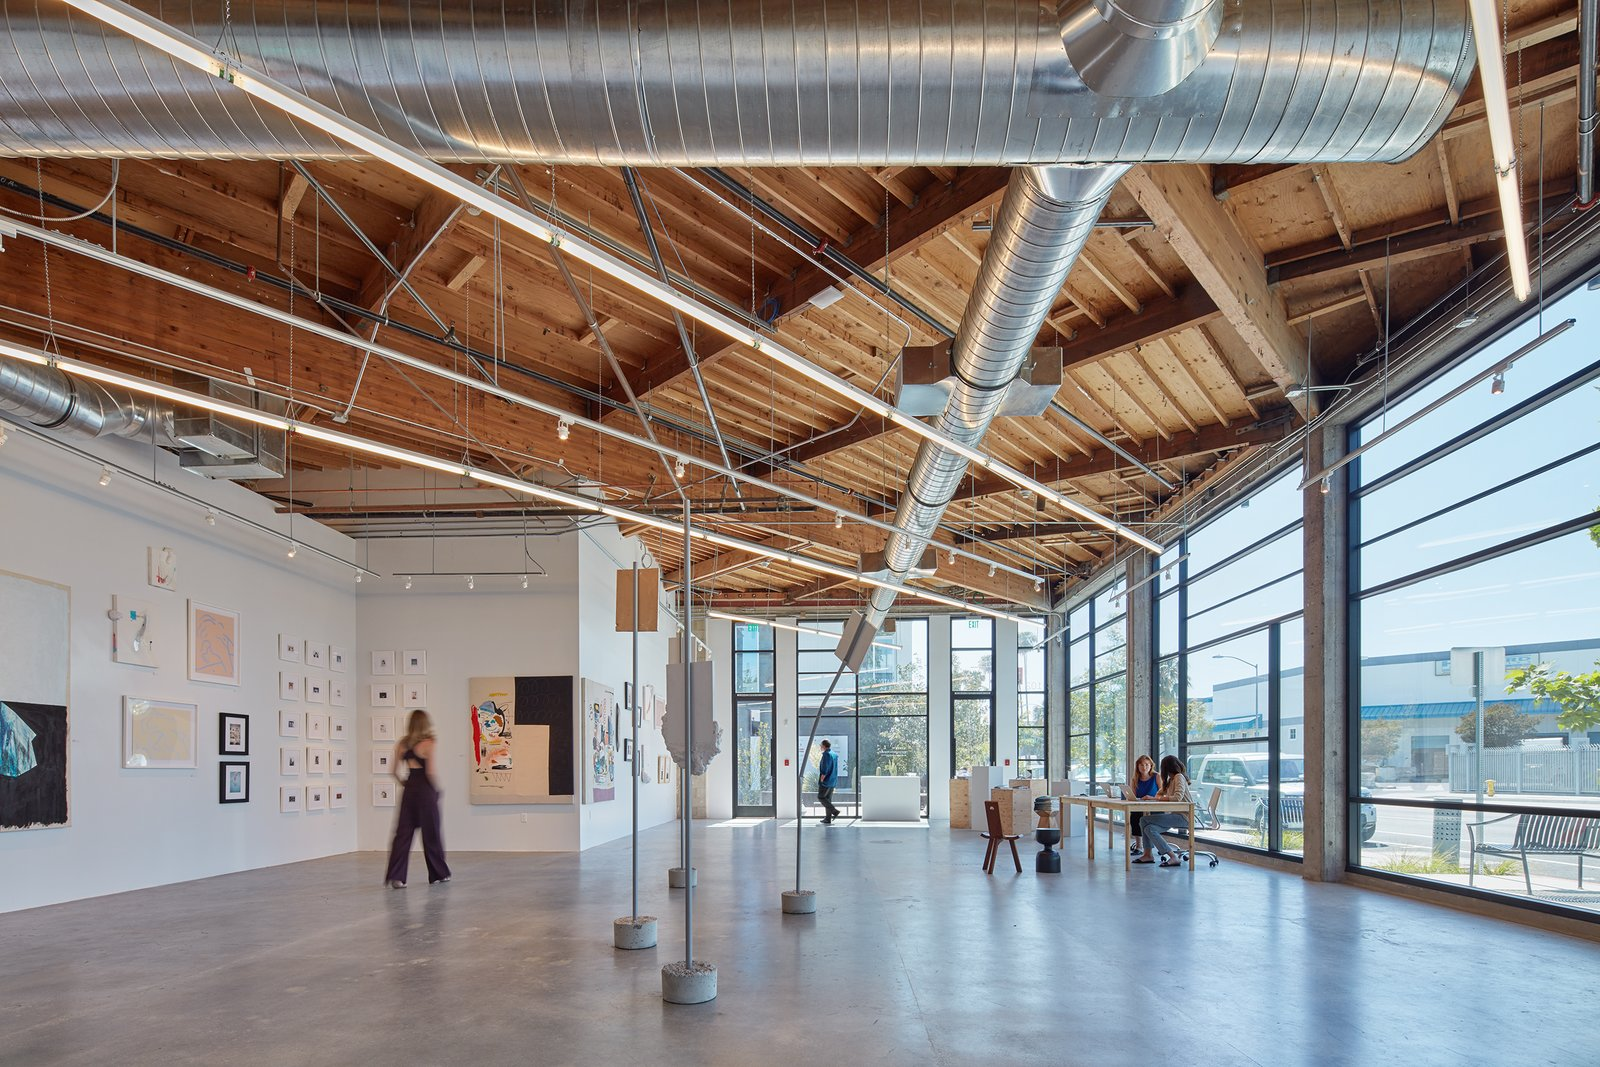 The old car dealership showroom was adapted into an art gallery.   PLATFORM by Abramson Teiger Architects